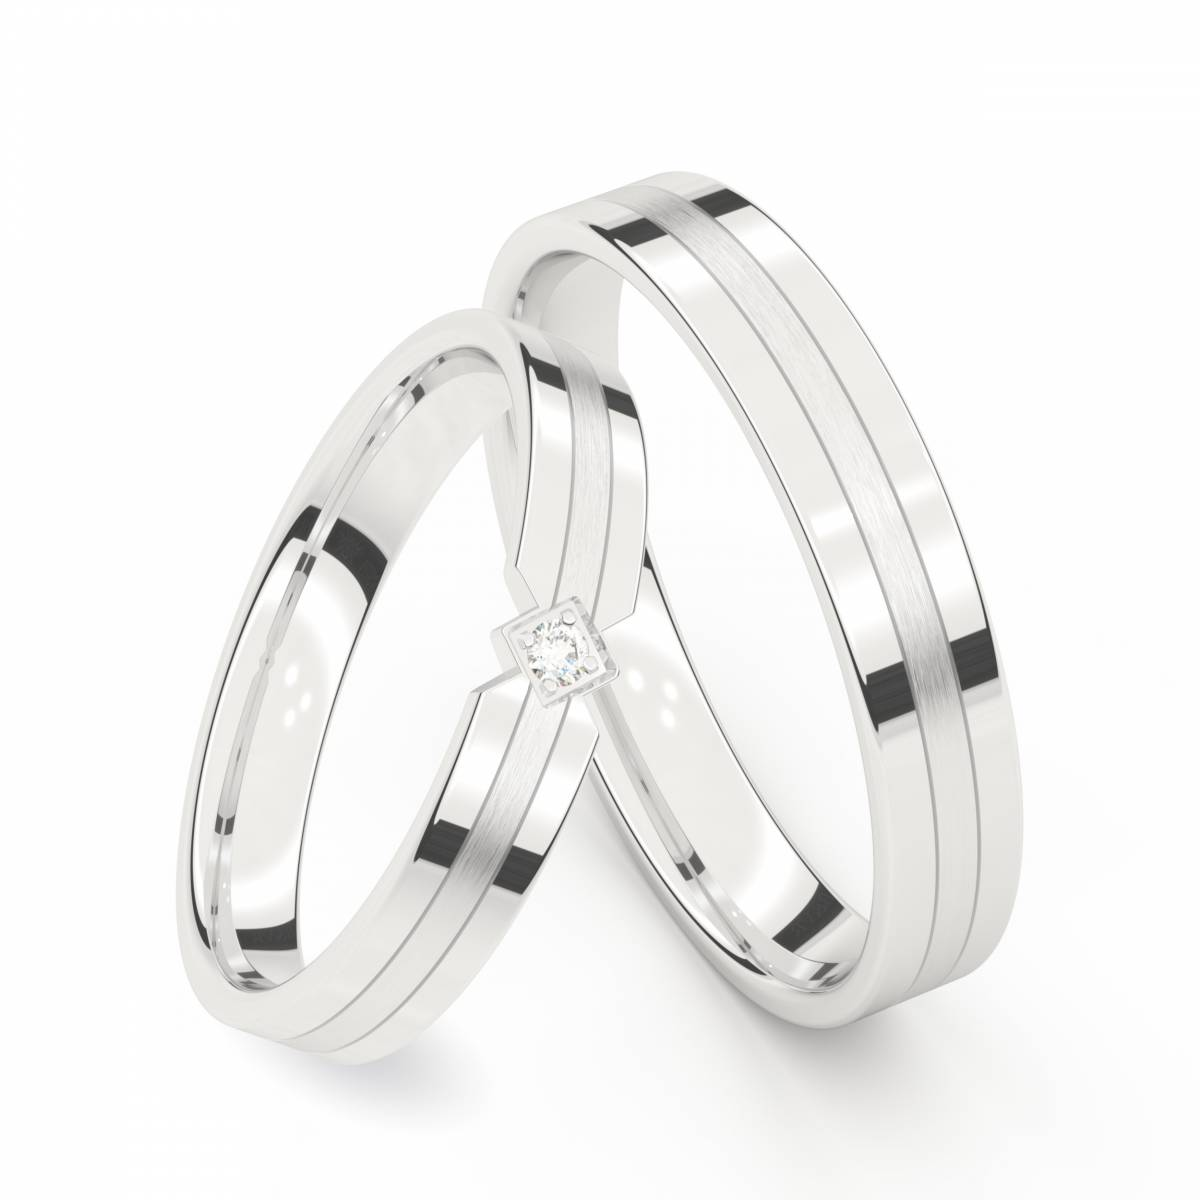 Juwelier Jan Maes - Trouwringen - Verlovingsringen - Juwelen - House of Weddings - 17